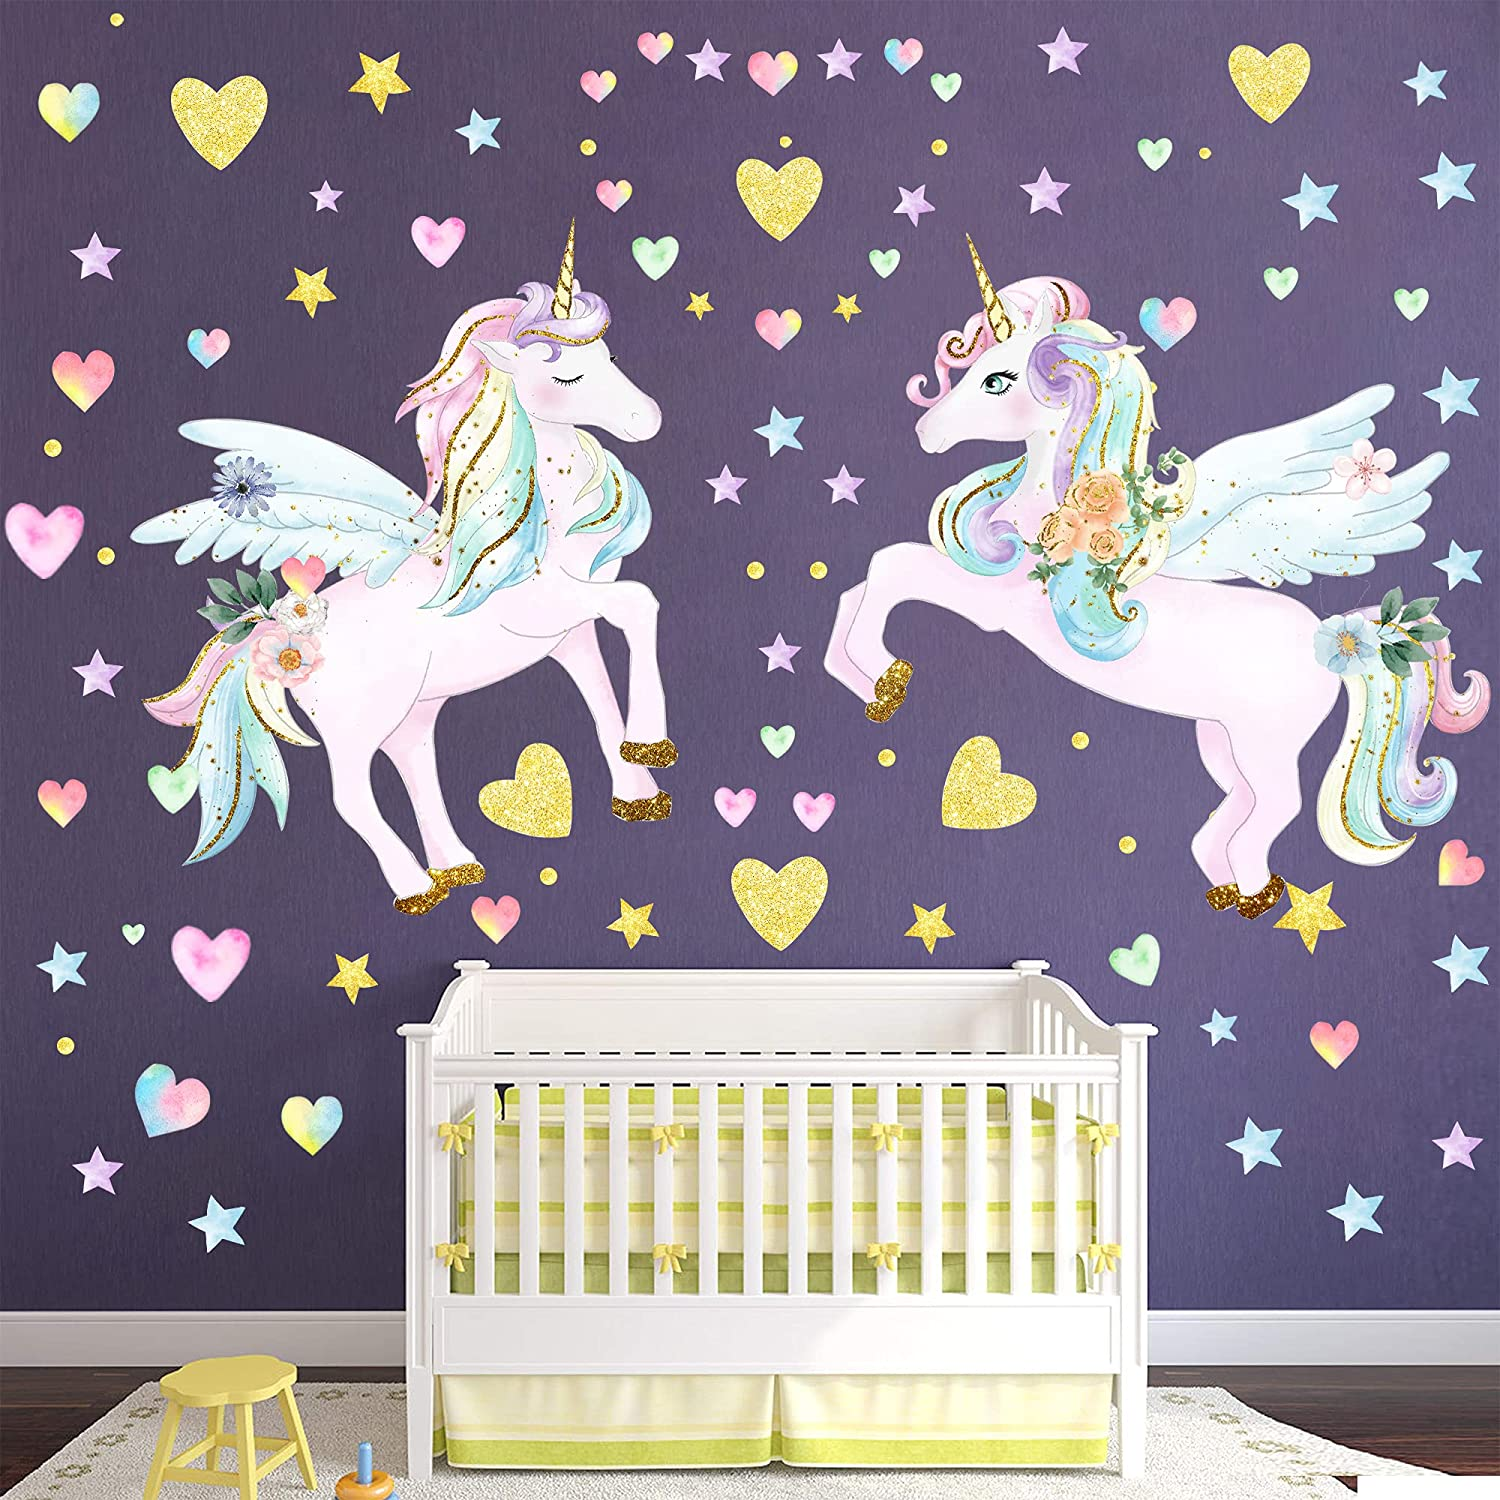 online shop Omaha Mall 3 Sheets Large Size Unicorn Bedroom for Wal Decals Wall